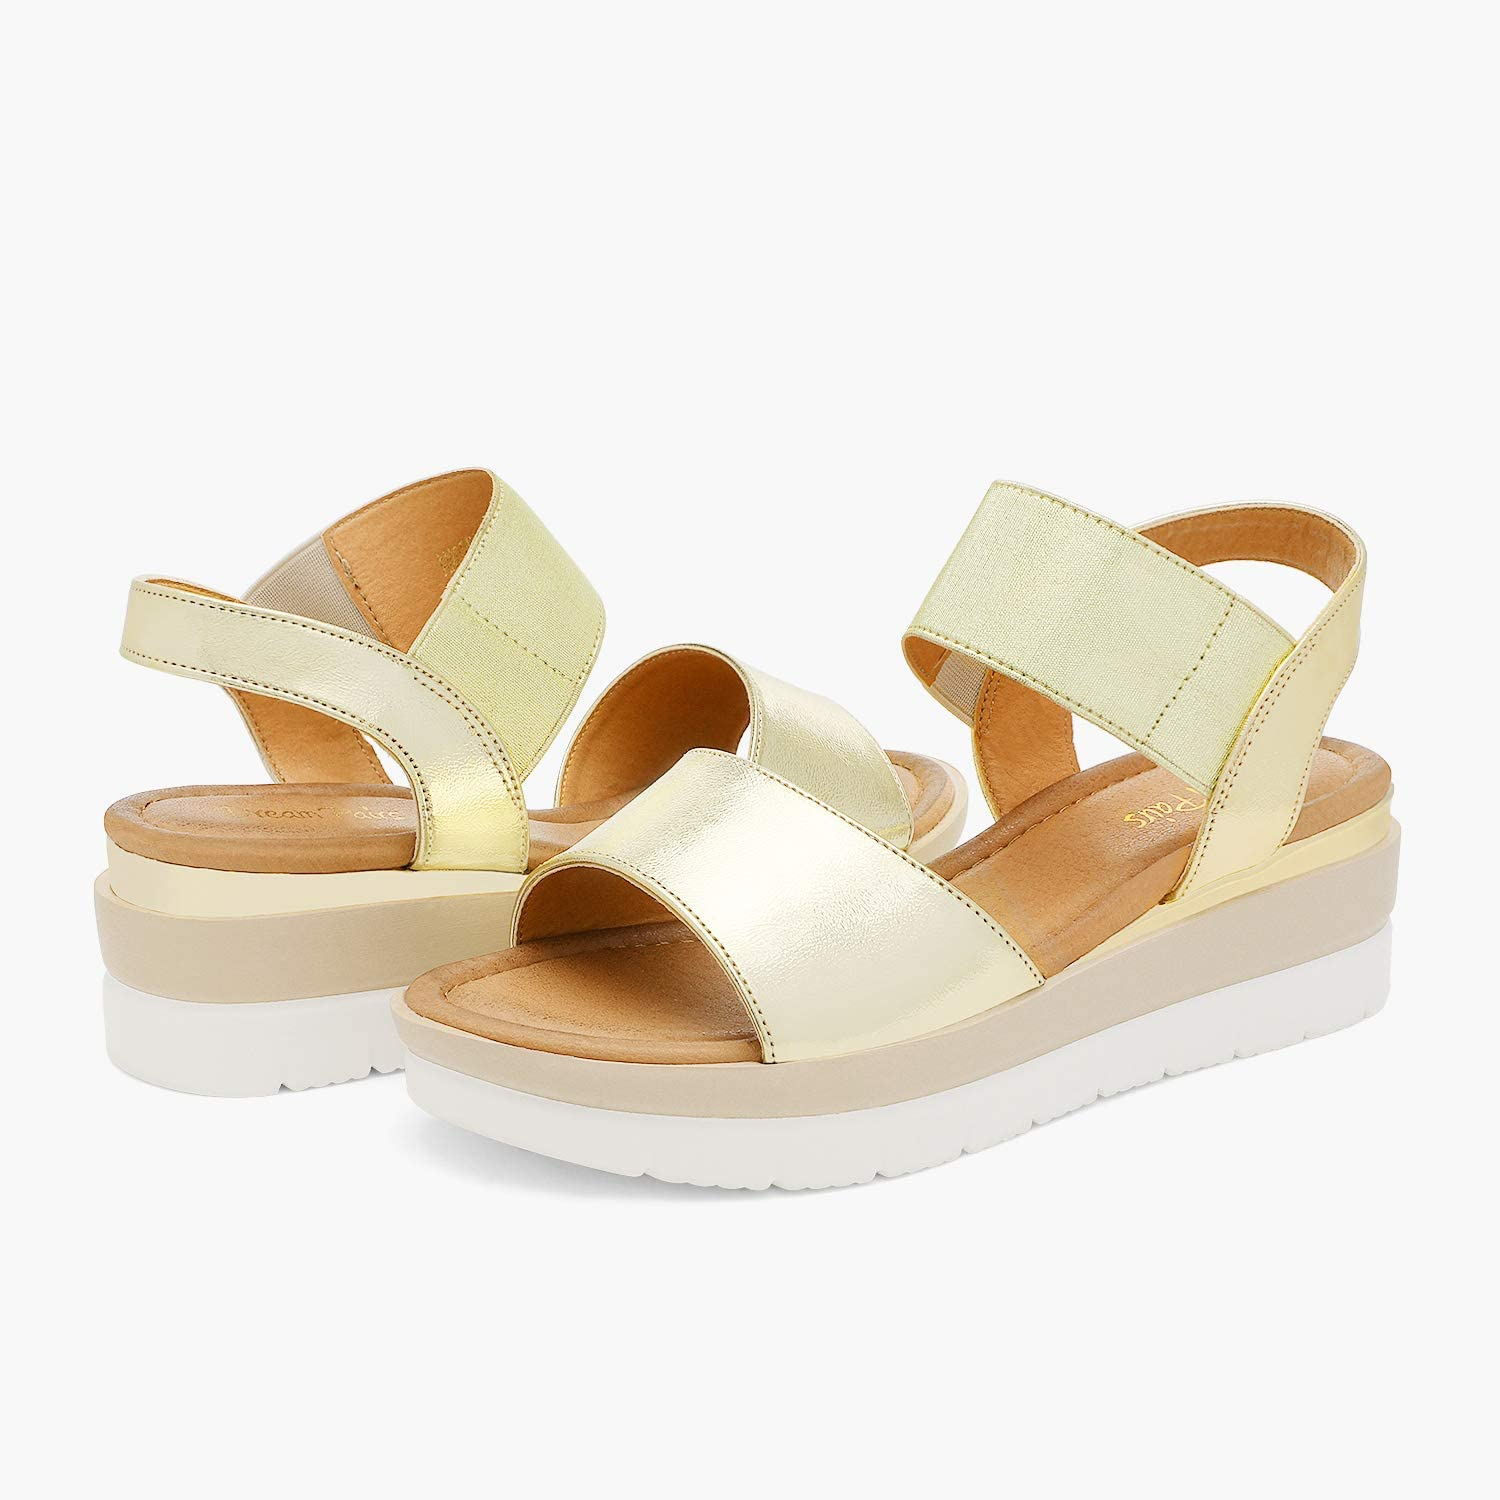 DREAM PAIRS Womens Open Toe Ankle Strap Platform Wedge Sandals